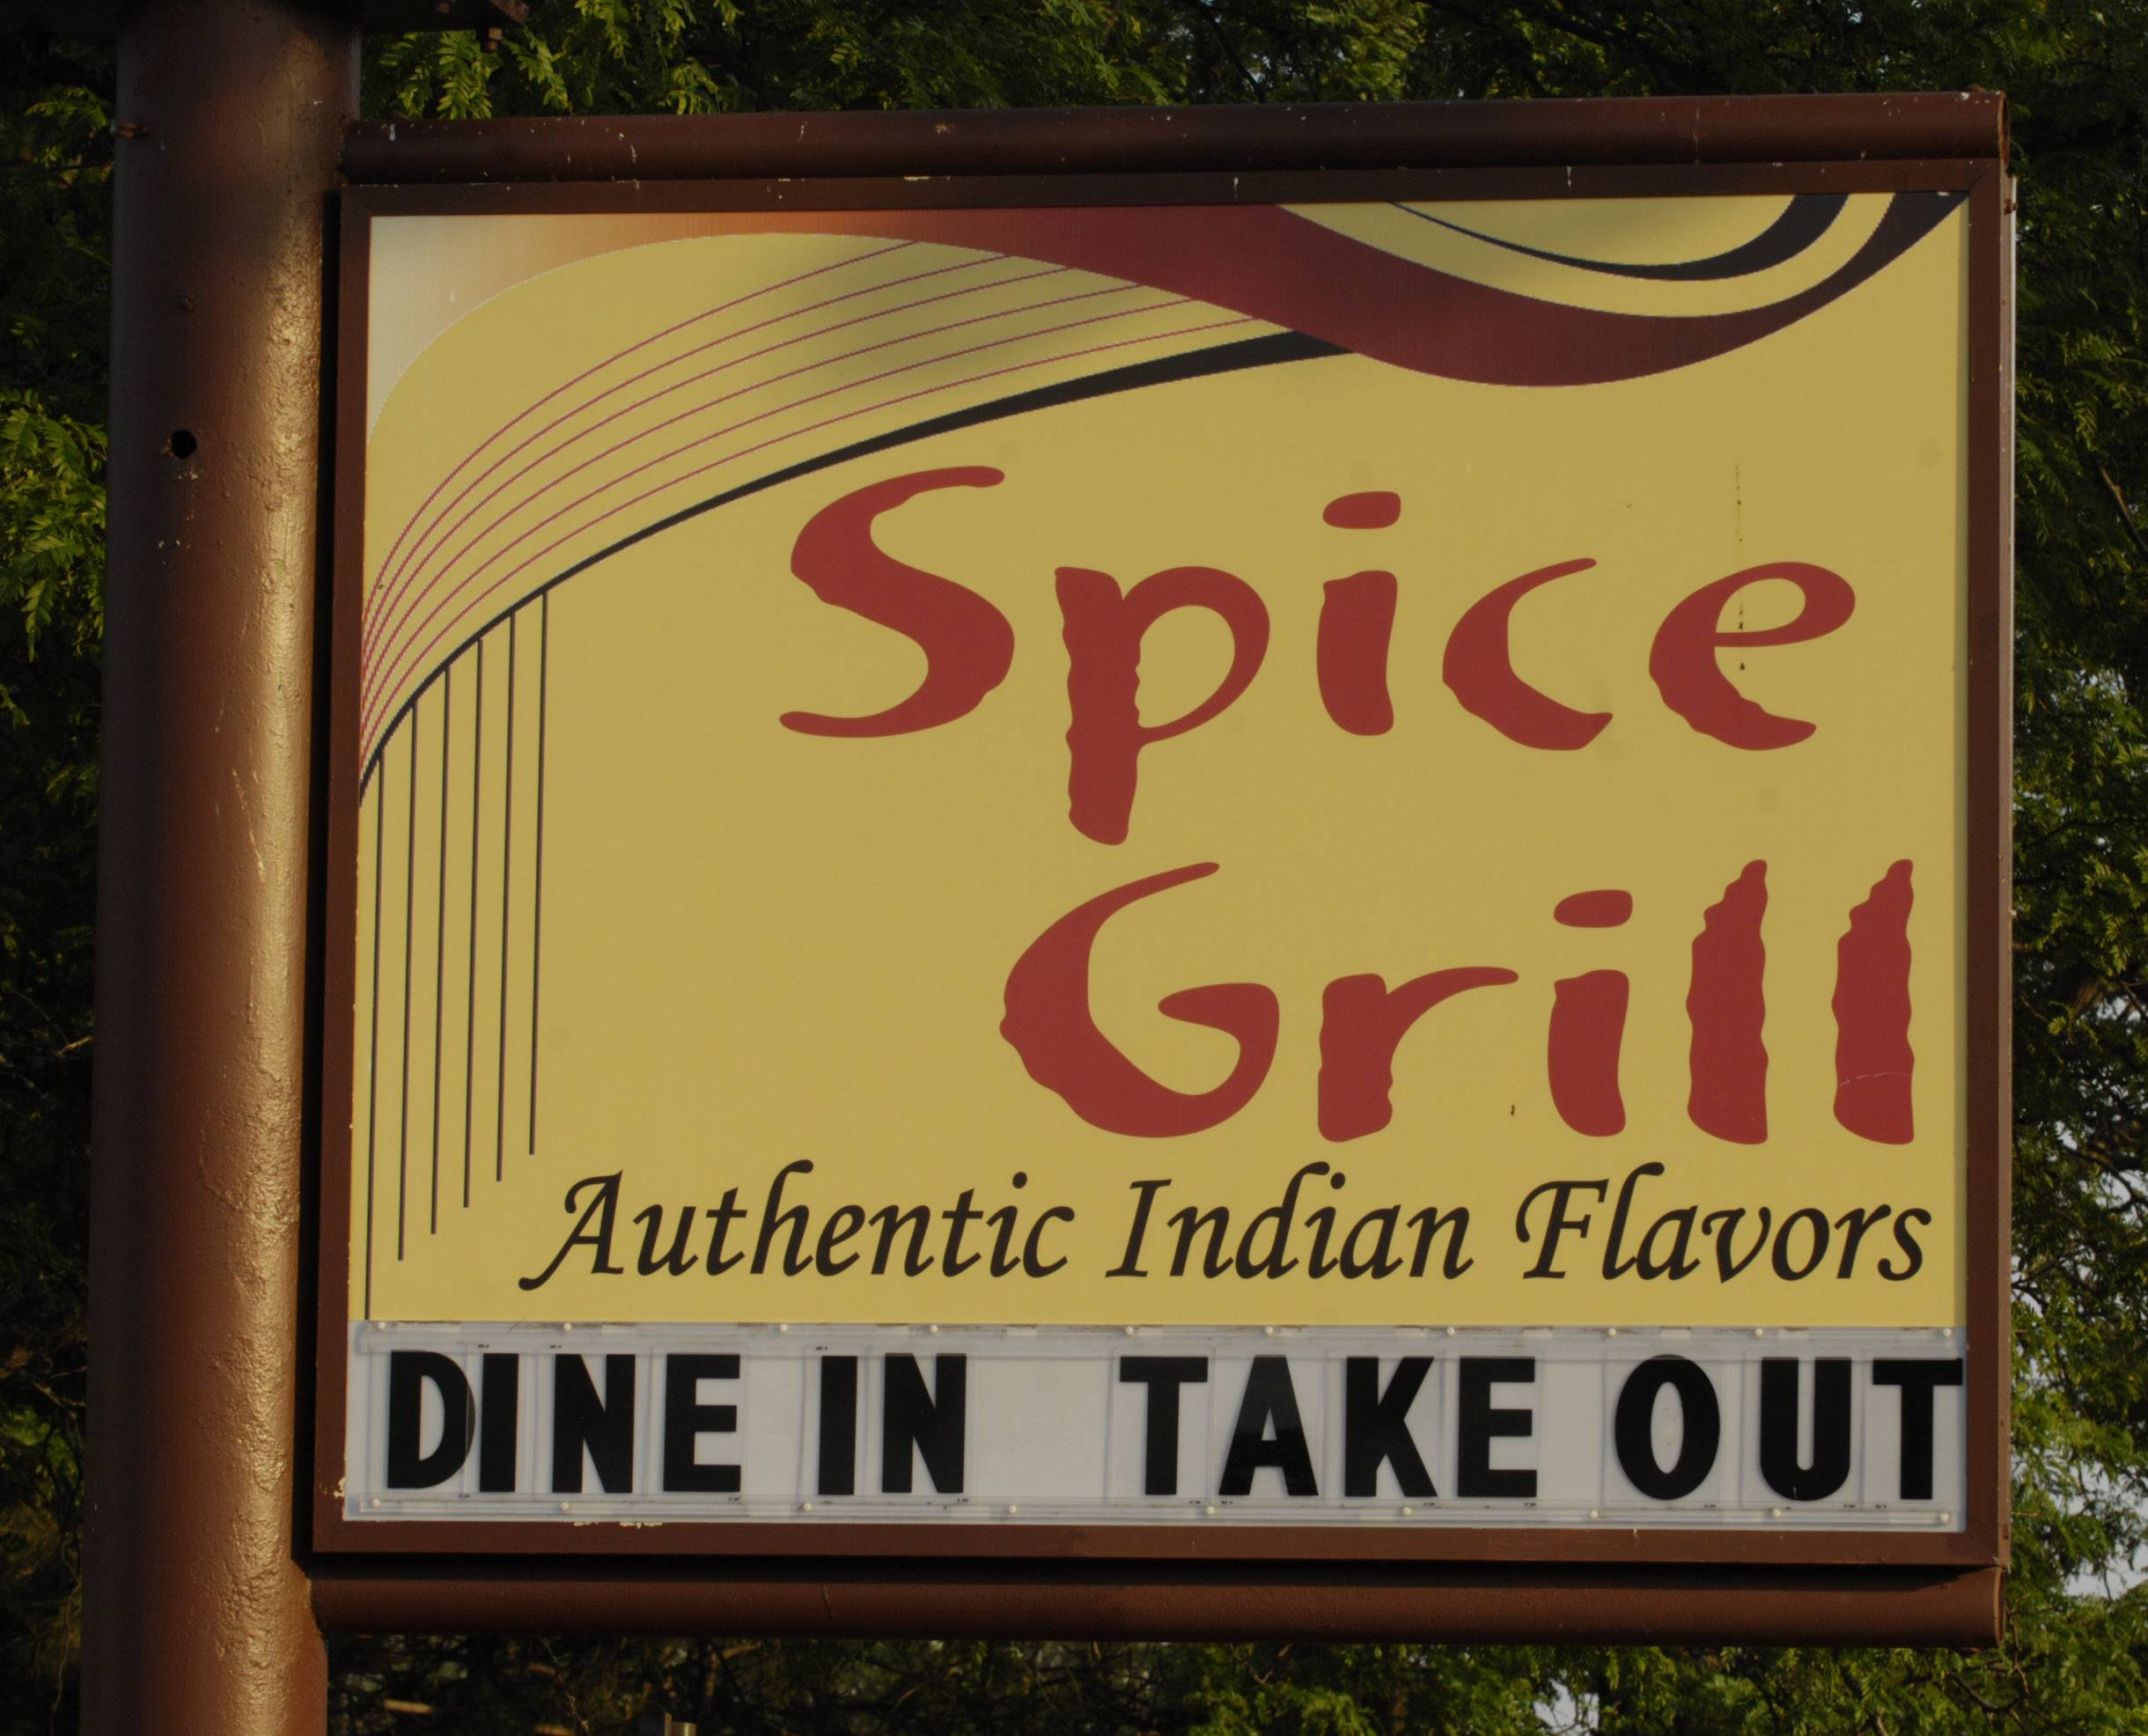 Spice Grill, which serves authentic Indian cuisine, recently opened for lunch and dinner on New Wilke Road in Rolling Meadows.